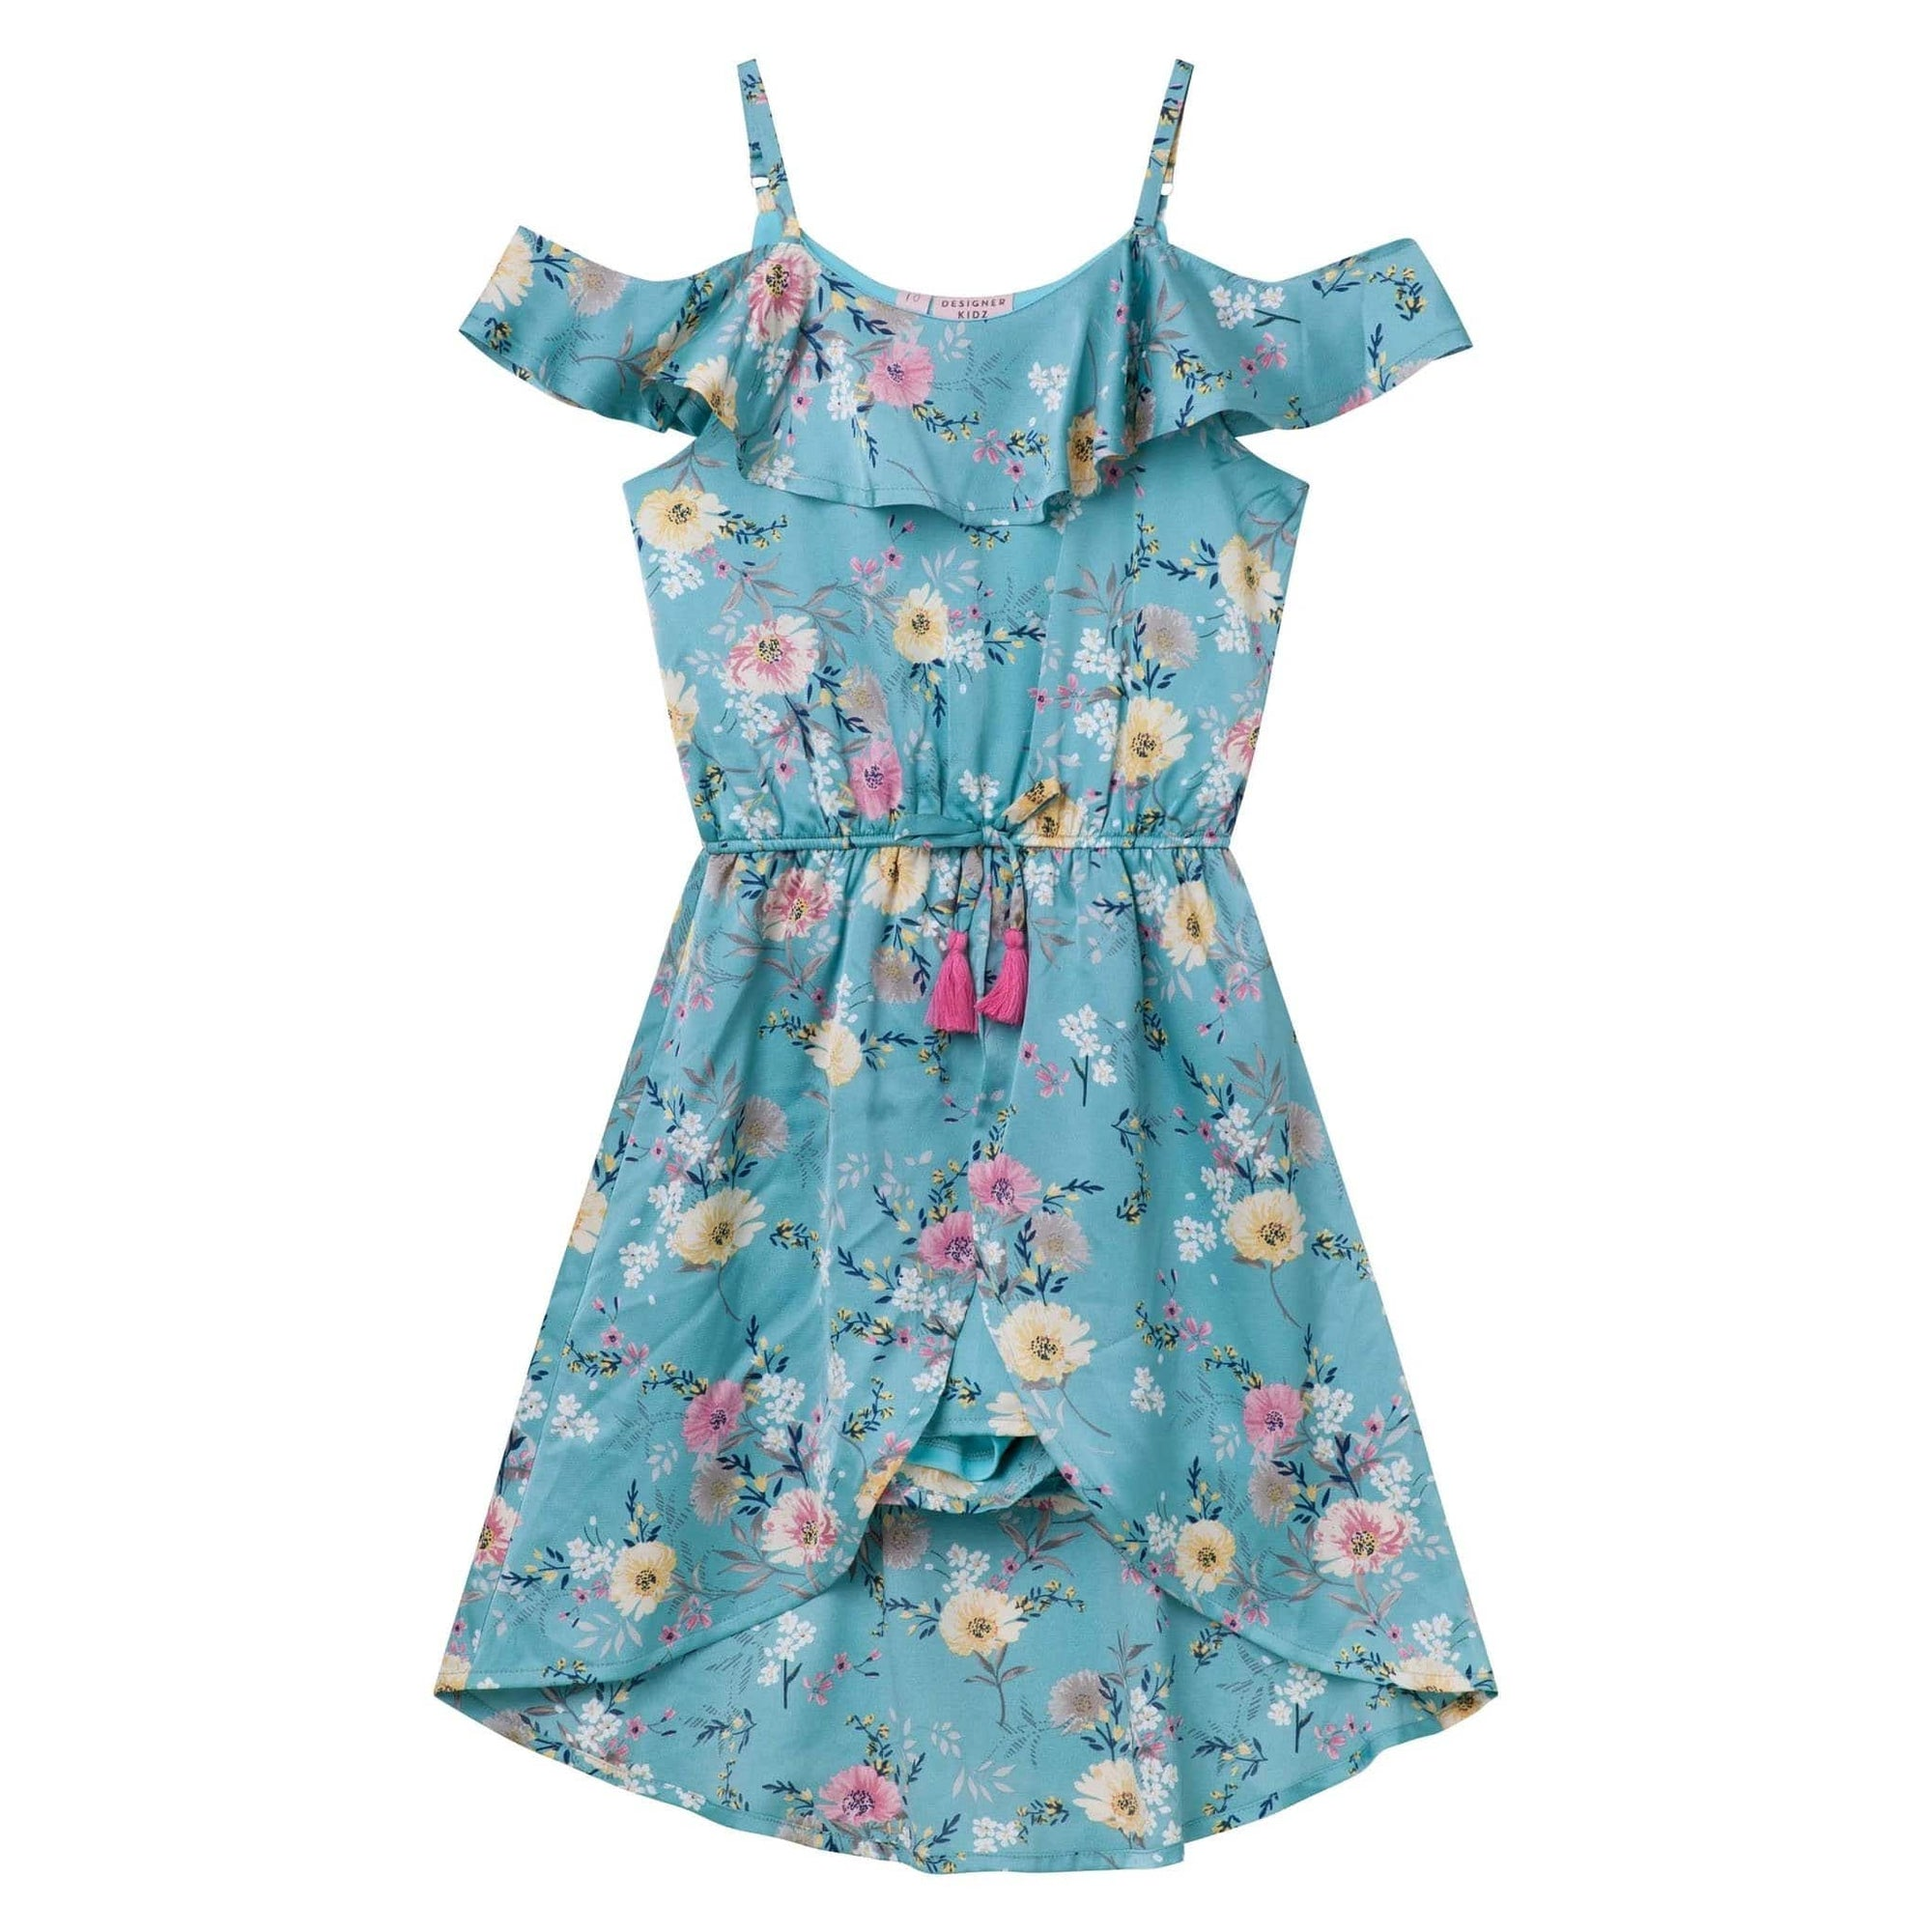 Designer Kidz Jacinta Walkthrough Playsuit - Aqua